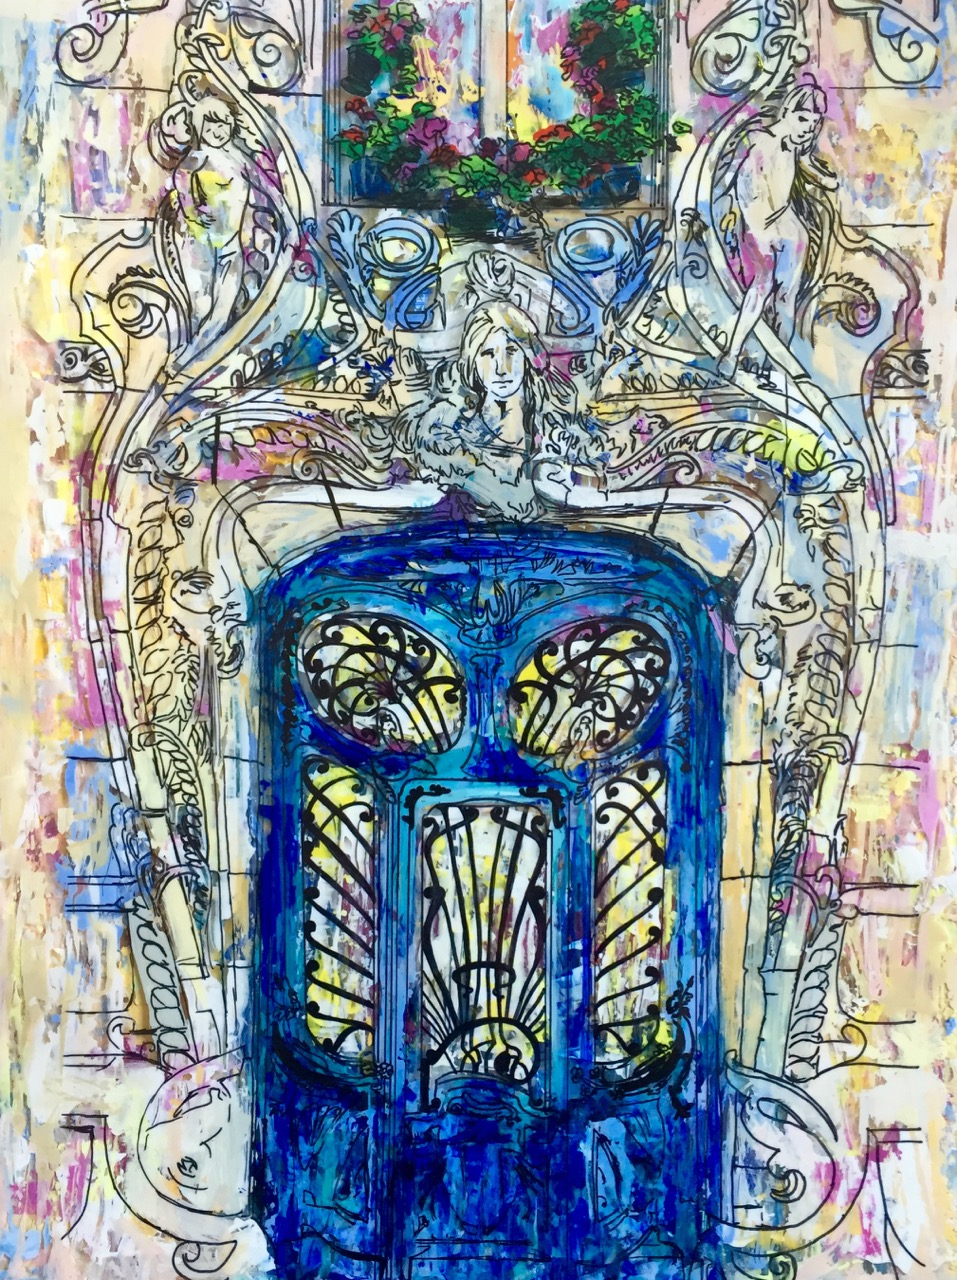 "LA PORTE LAVIROTTE, PARIS   11 X 14""   Acrylic, ink, acetate, and epoxy resin on canvas    2016    SOLD"